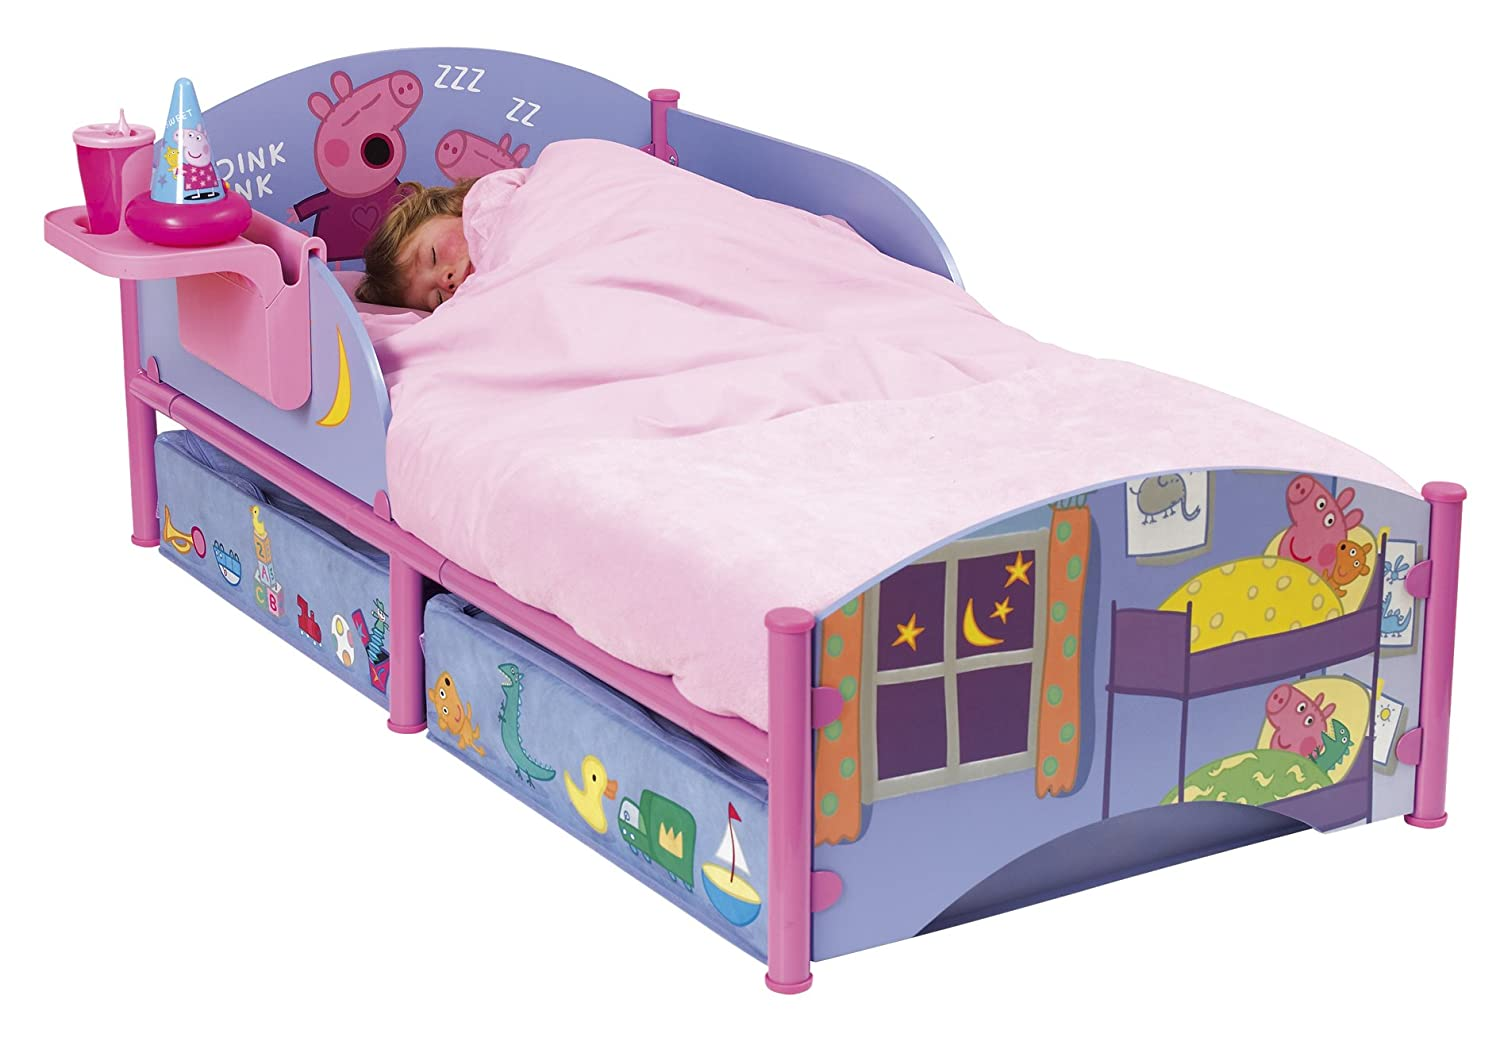 Peppa Pig Bedroom Decor Peppa Pig Toddler Bed Amazoncouk Kitchen Home